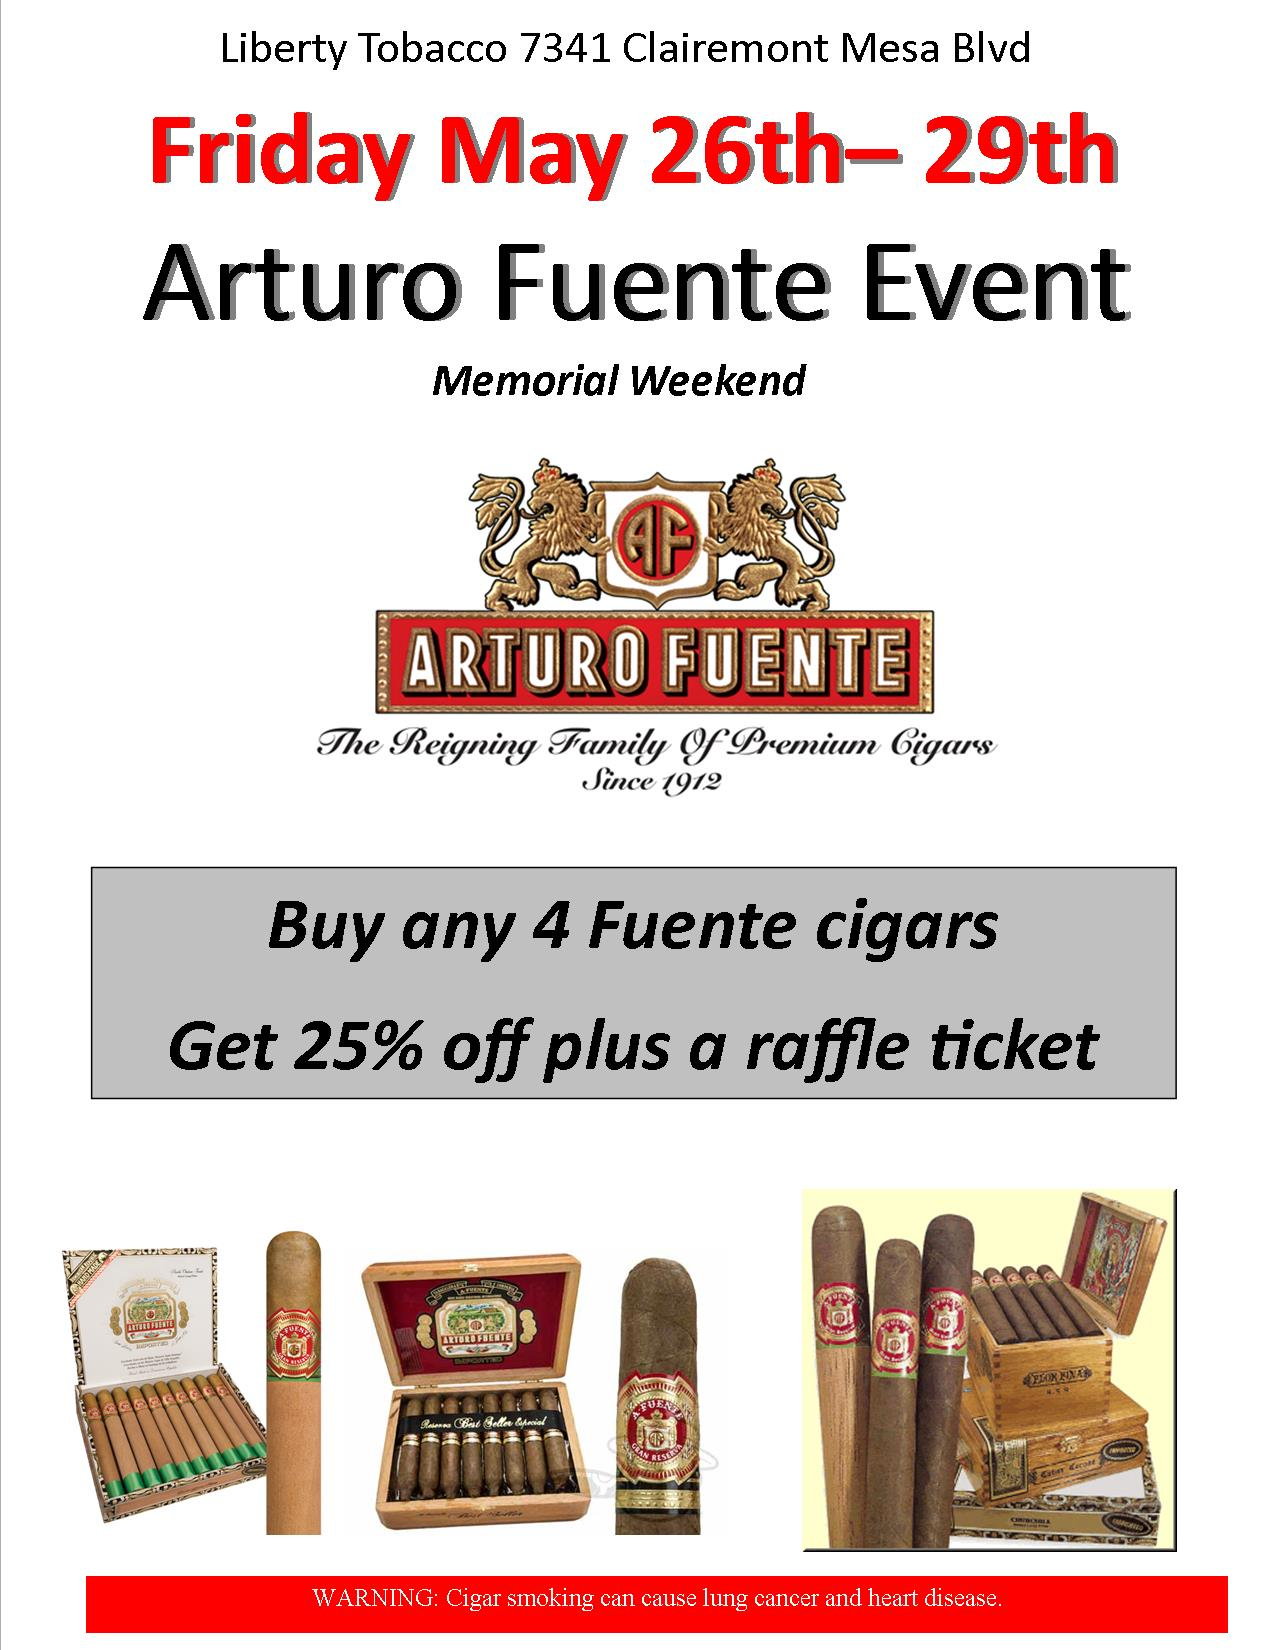 Arturo Fuente Memorial Weekend Event